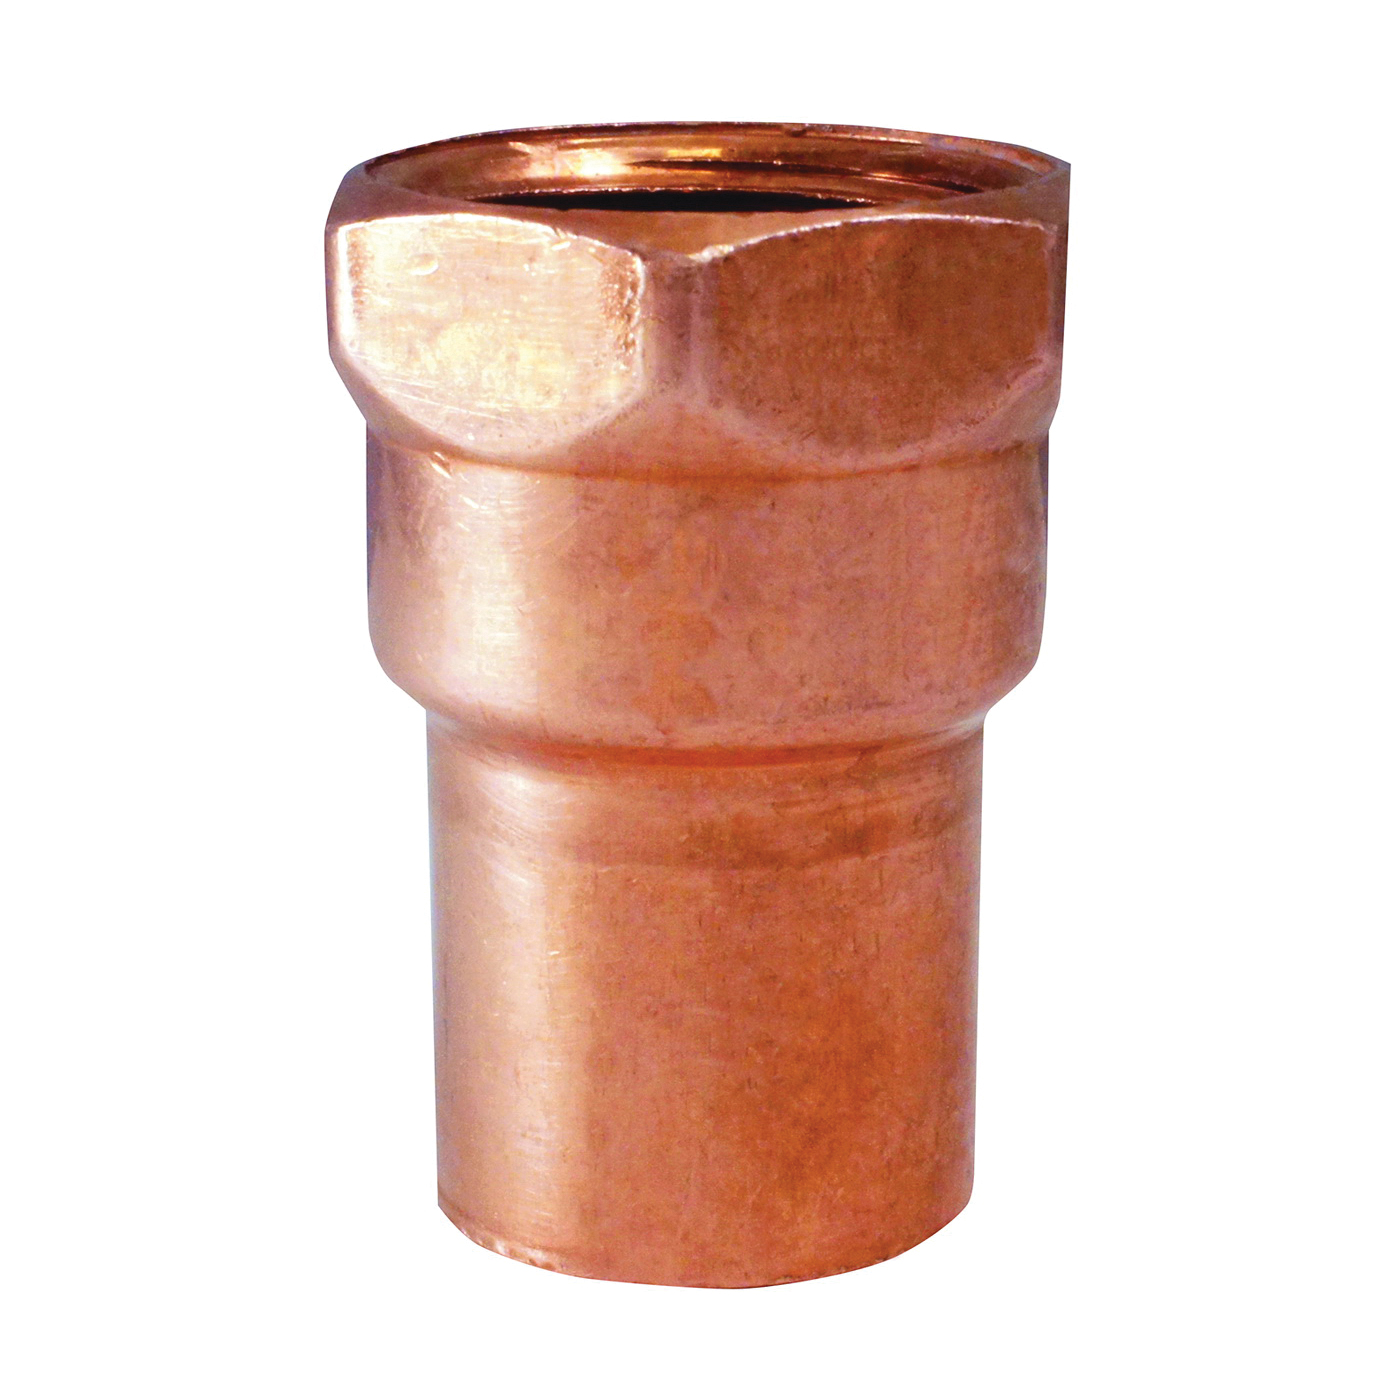 Picture of EPC 103R Series 10130138 Reducing Adapter, 1/2 x 1/4 in, Sweat x FIP, Copper